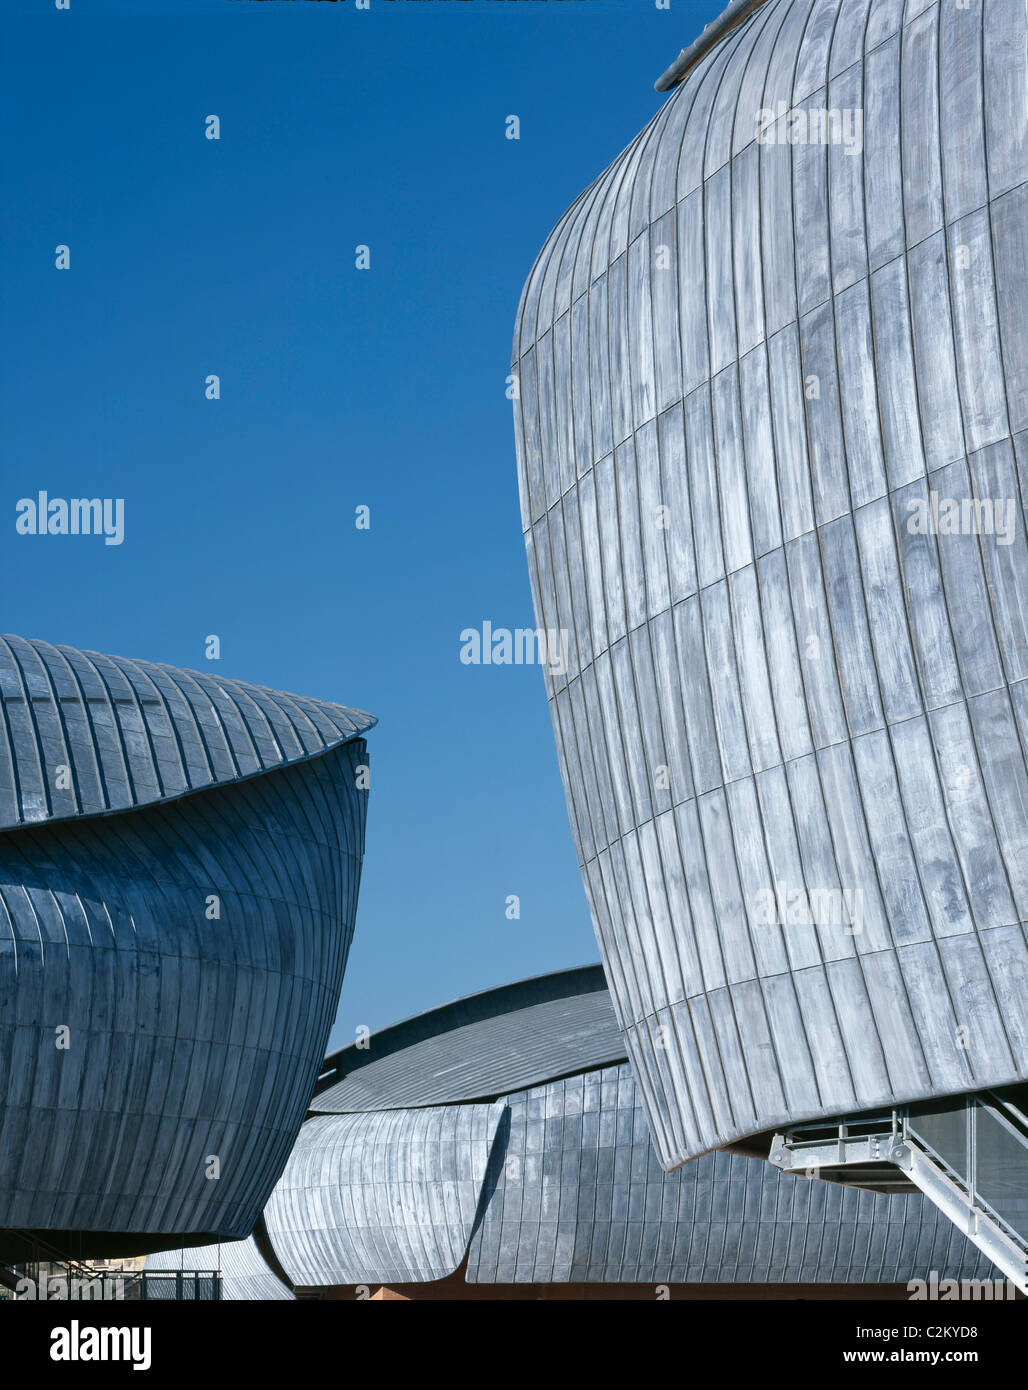 Auditorium, Parco della Musica, Rome, 1997-2002. Roofs of concert halls from the park. Stock Photo